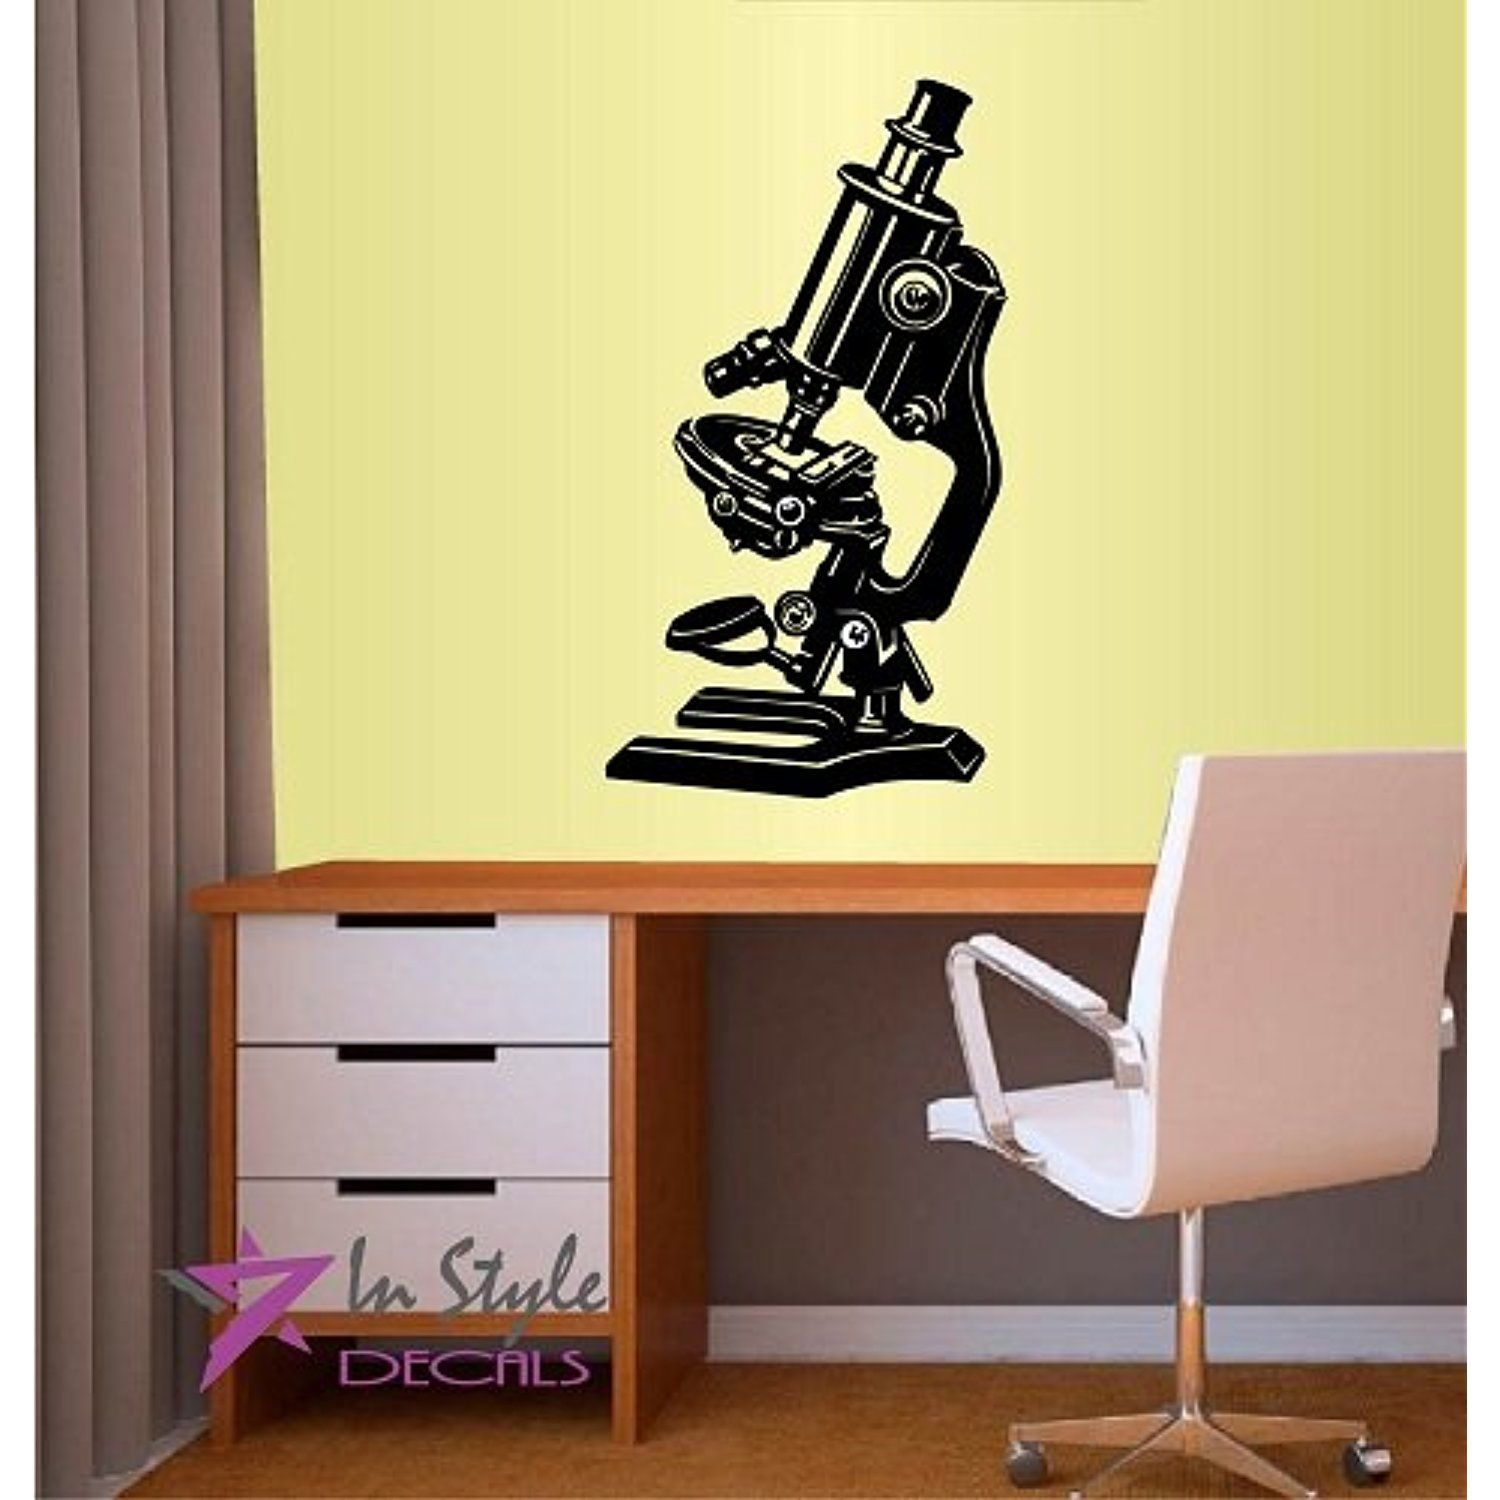 Wall Vinyl Decal Home Decor Art Sticker Science Microscope Room ...